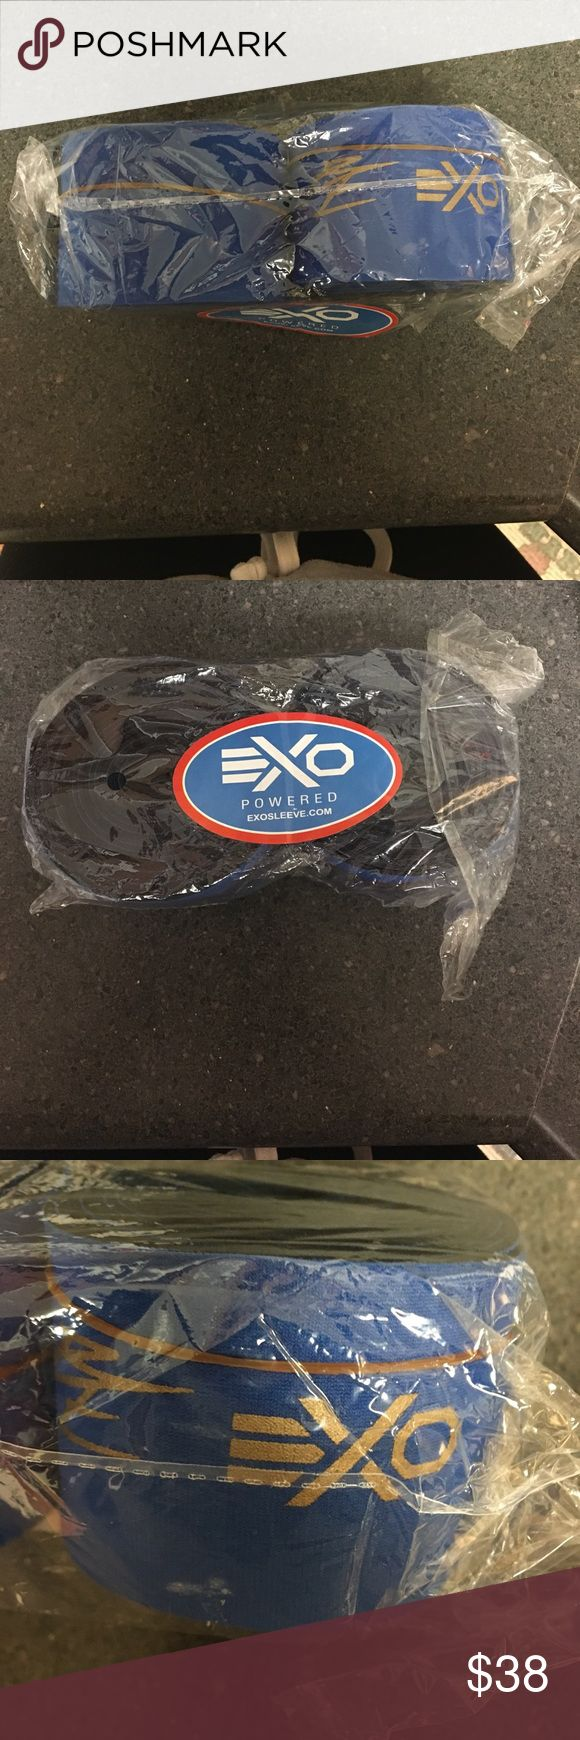 Knee wraps Brand new in package knee wraps by exo sleeve. These are the Brooke ence edition, blue with gold writing. Size small tagged: knee sleeves weightlifting exo sleeve Accessories